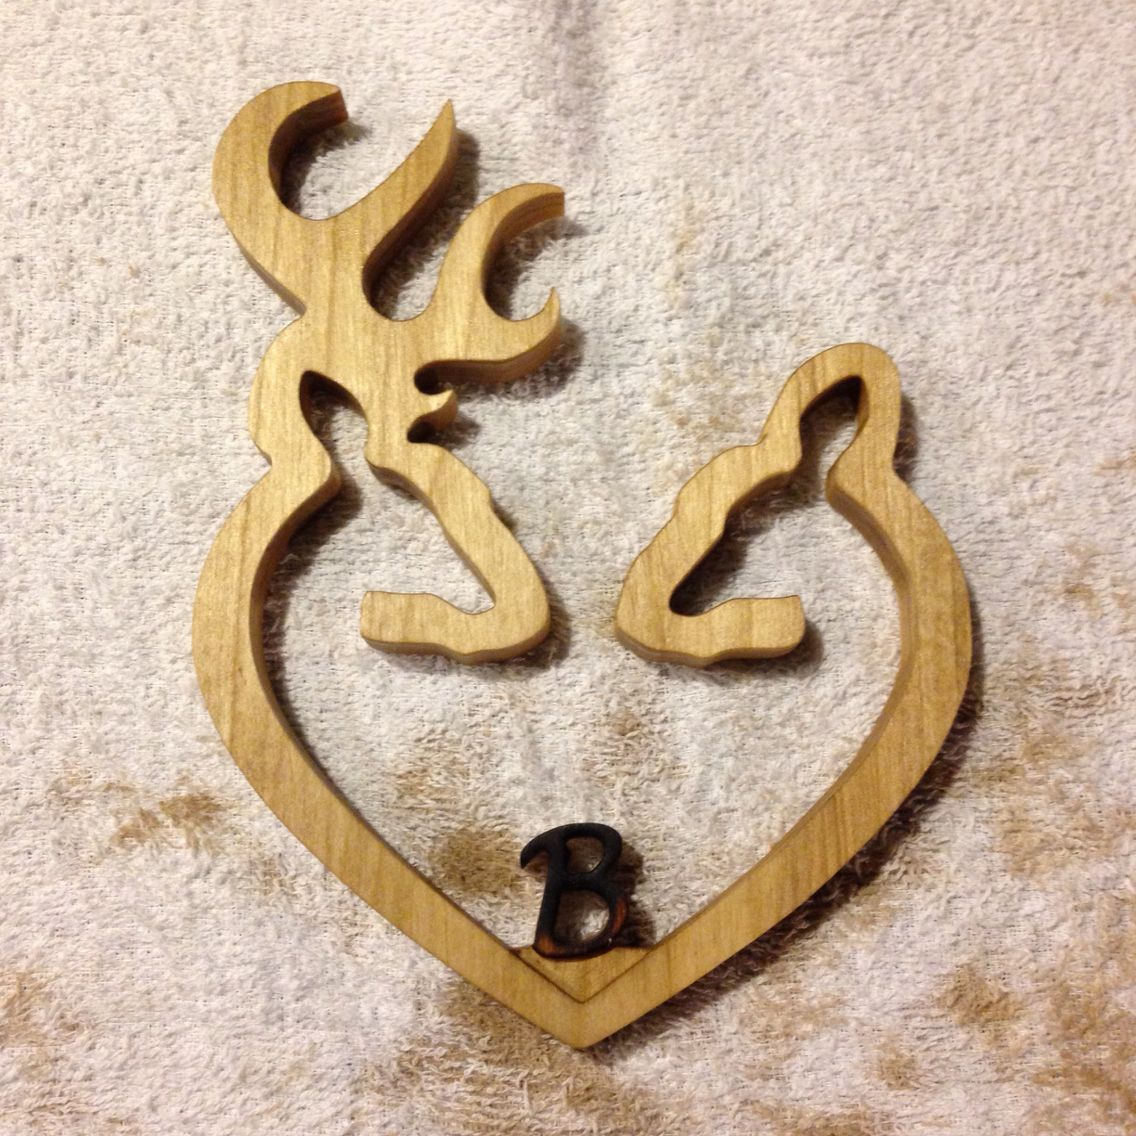 Browning love freshly stained poplar wedding cake topper cnc browning love freshly stained poplar wedding cake topper biocorpaavc Images